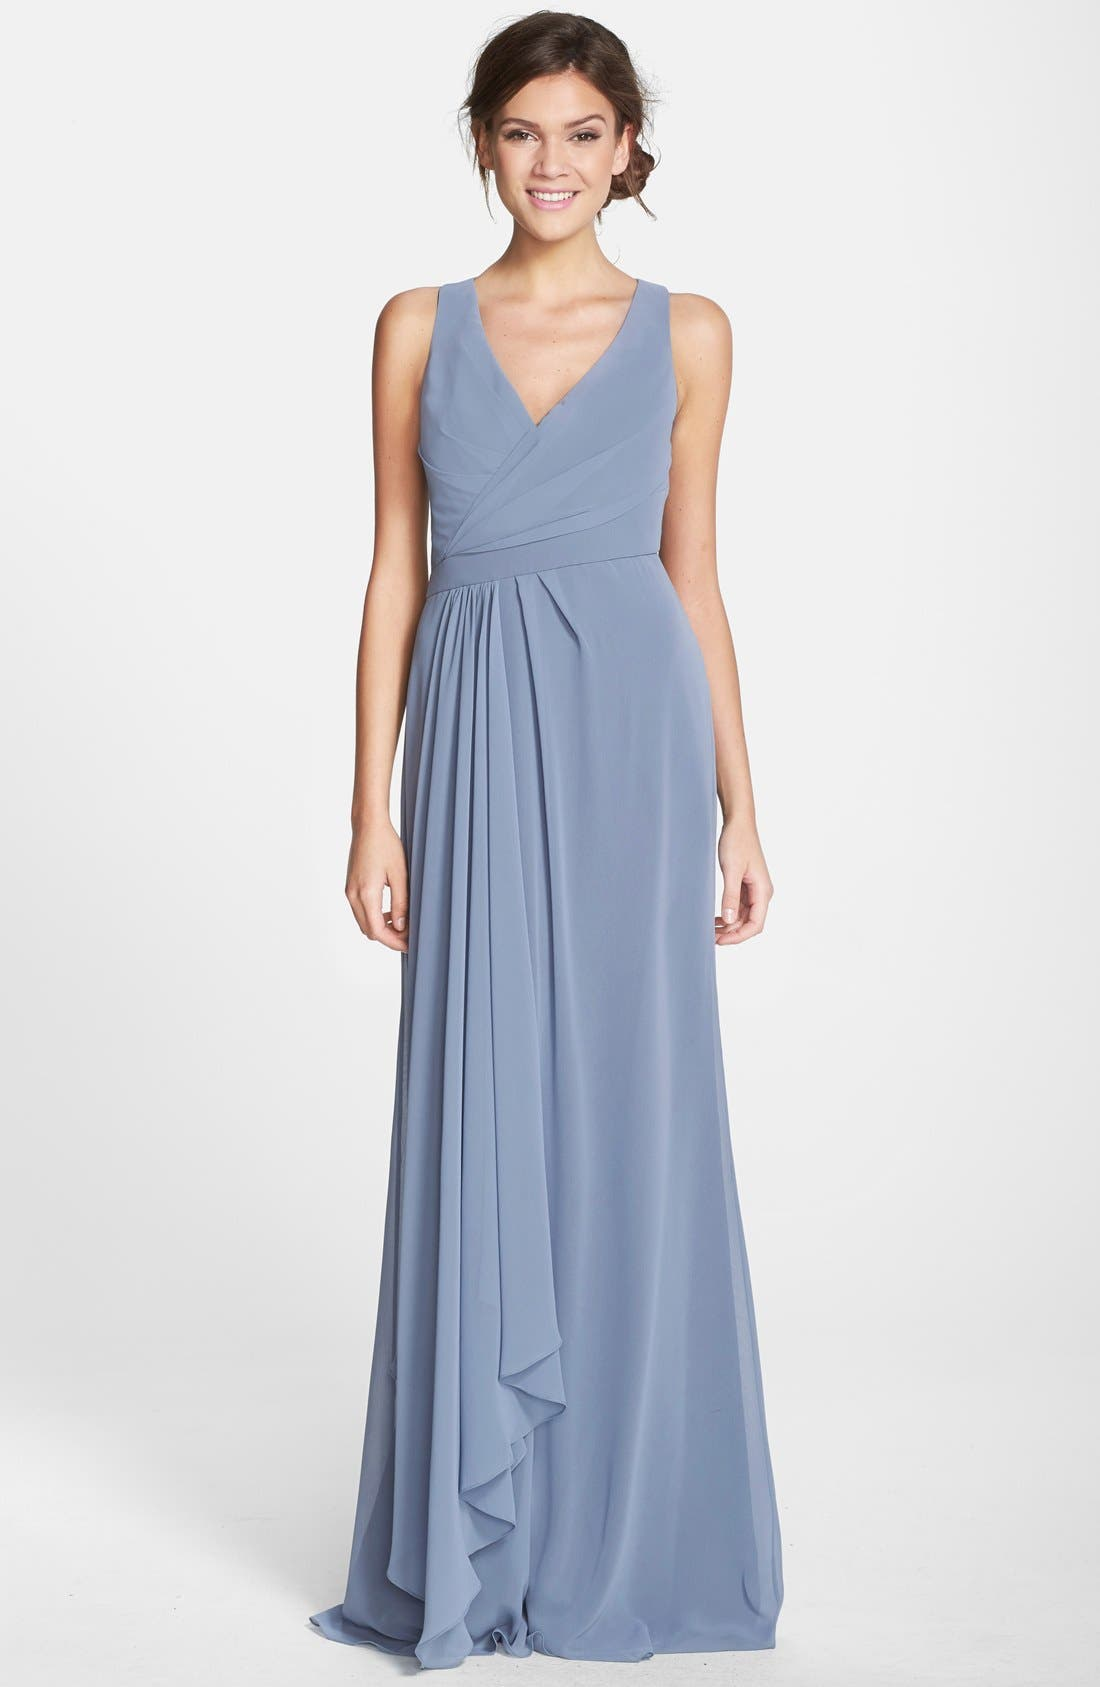 Sleeveless V-Neck Chiffon Gown,                             Main thumbnail 1, color,                             461